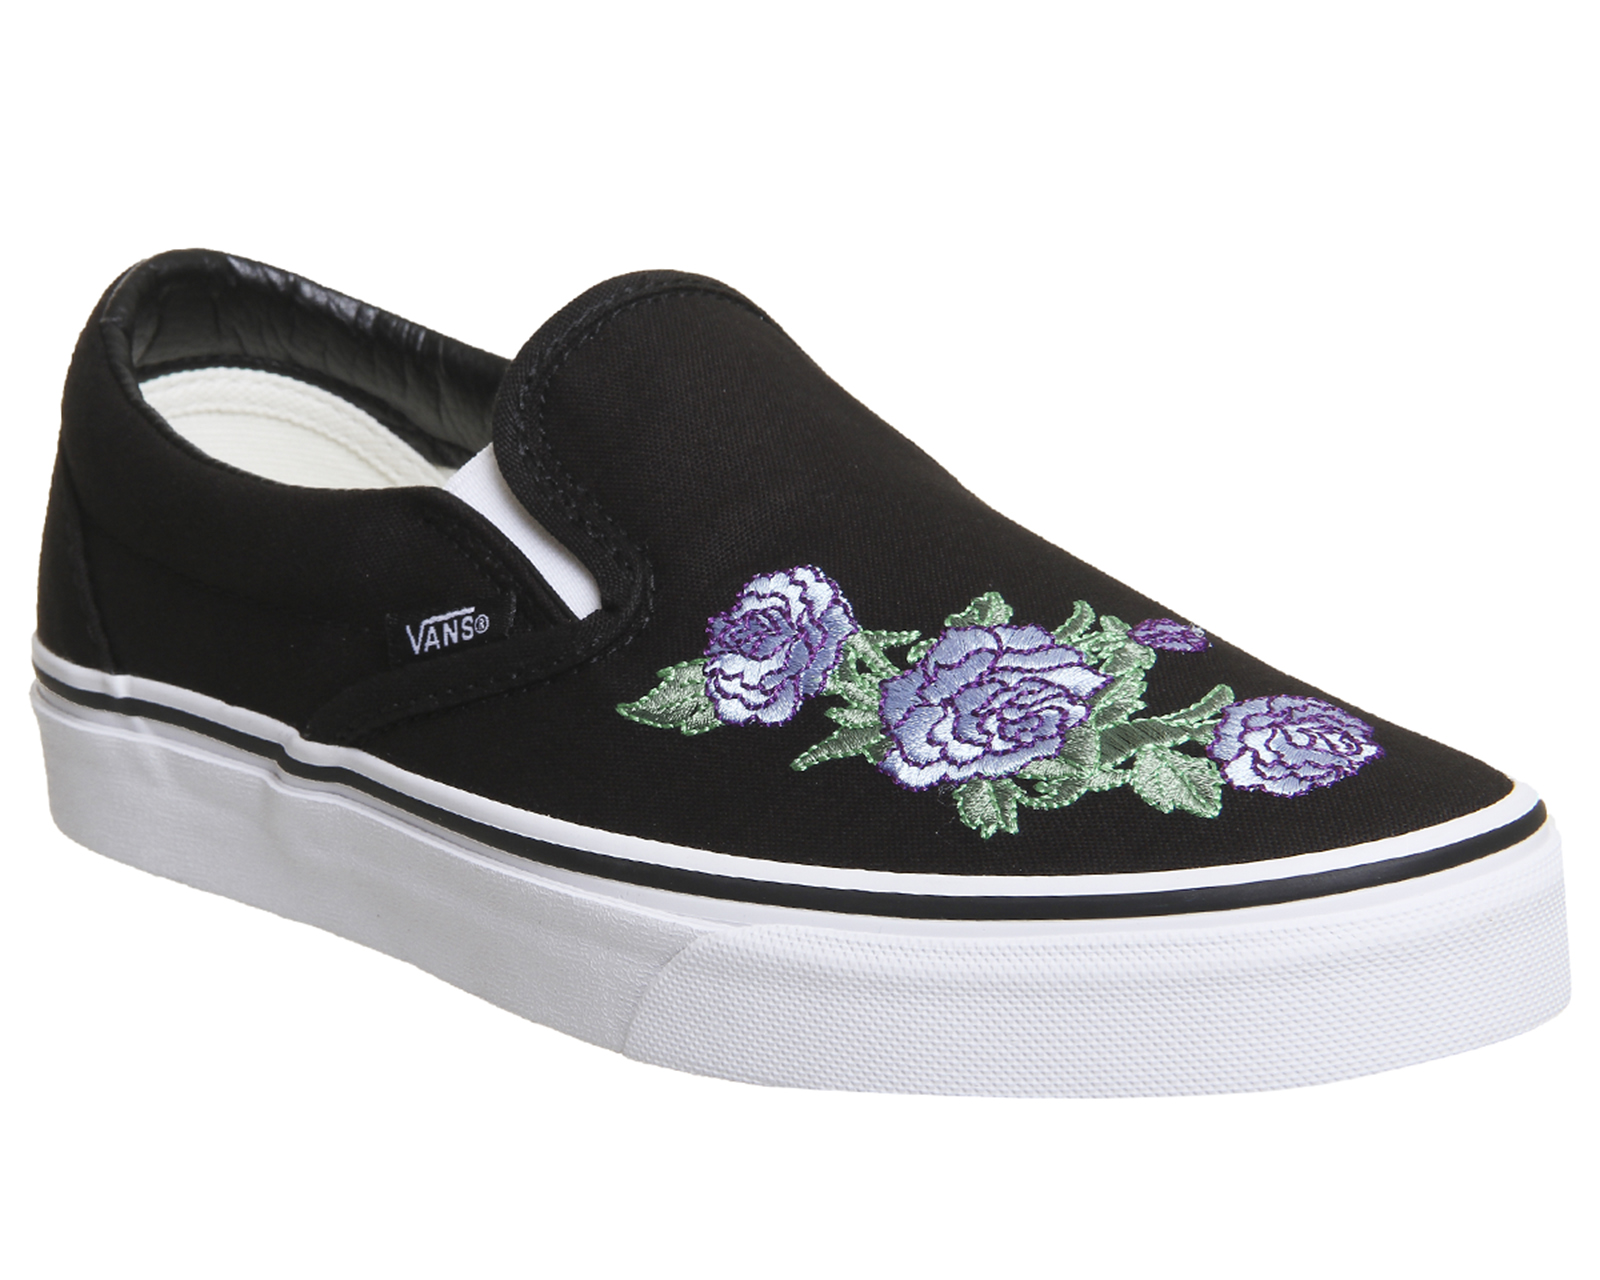 9980acf34a01fb Image is loading Womens-Vans-Vans-Classic-Slip-On-Trainers-BLACK-